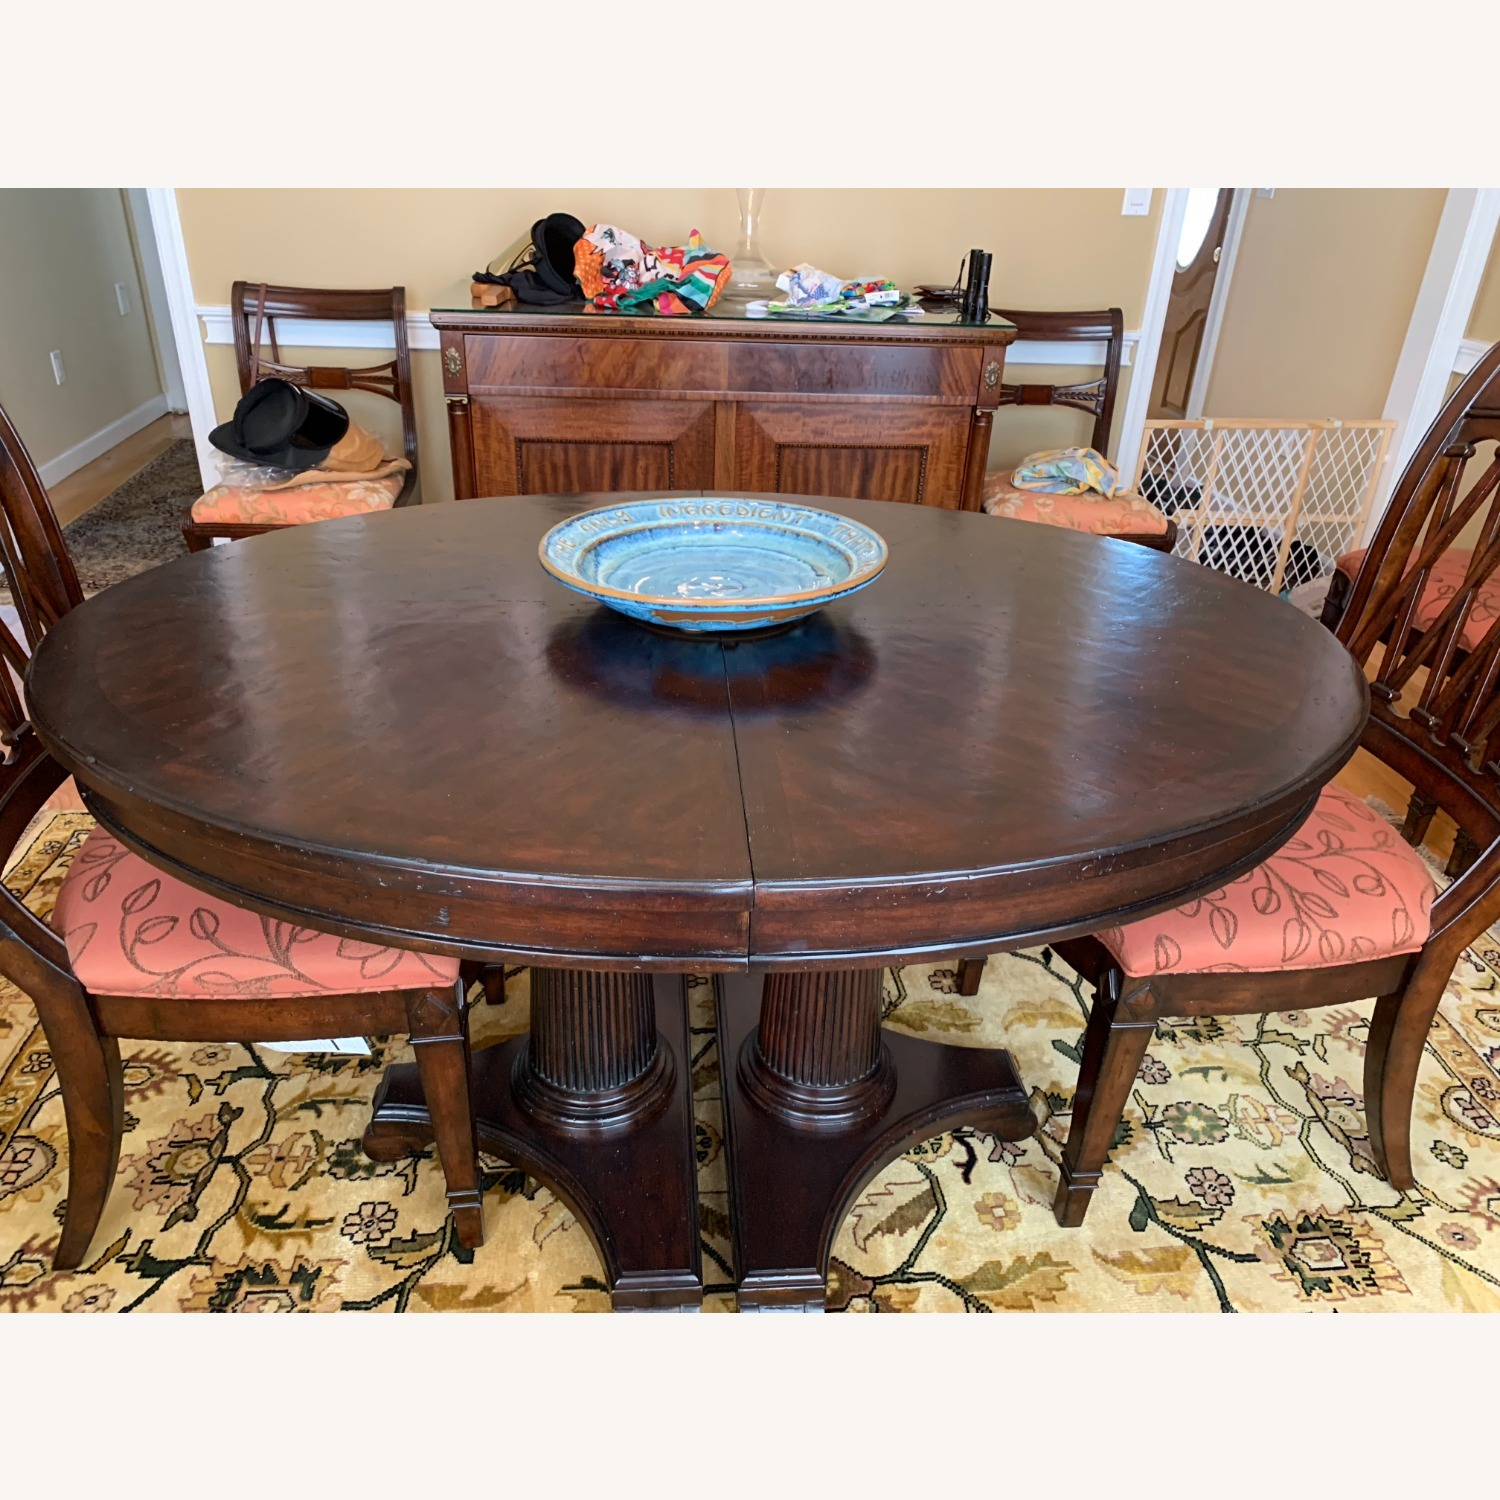 Drexel Solid Wood Dining Table with 6 chairs - image-2